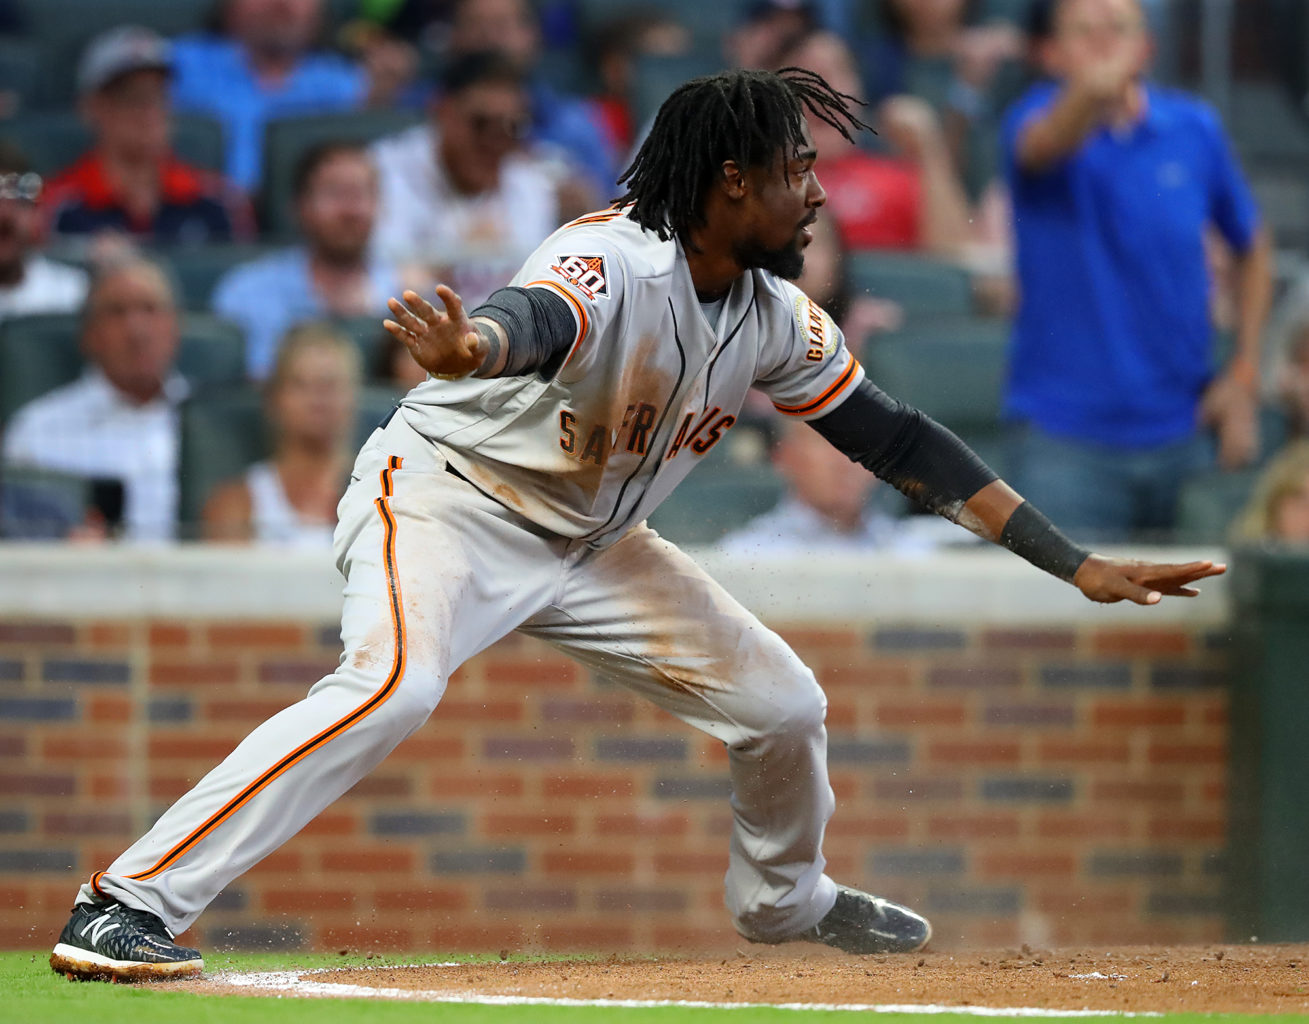 San Francisco Giants' Alen Hanson, seen here on May 5, started in place of Brandon Crawford for the second straight game on Wednesday. (Curtis Compton/Atlanta Journal-Constitution/TNS)